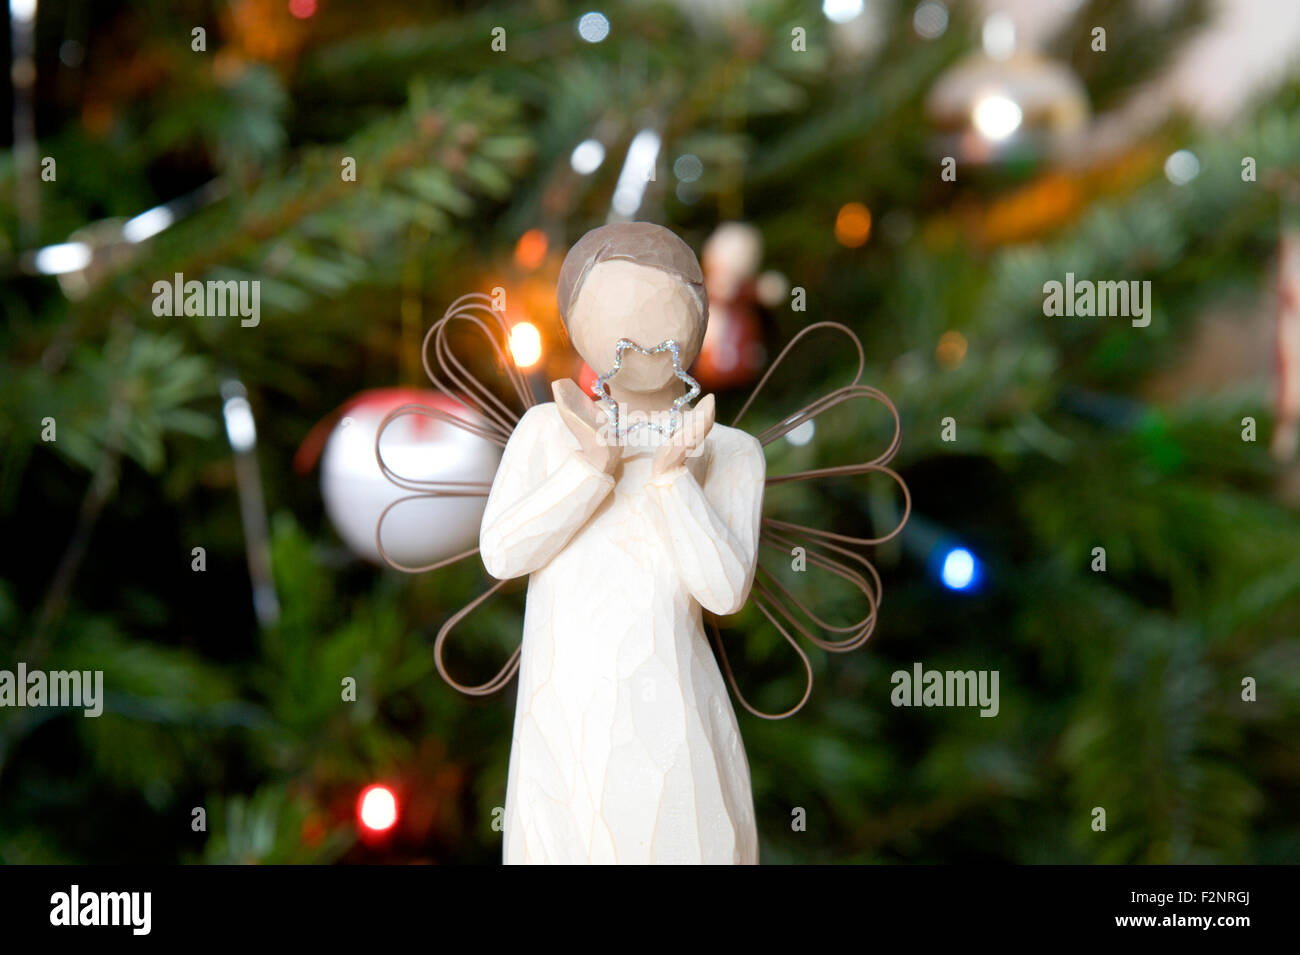 Angel Decorations High Resolution Stock Photography And Images Alamy